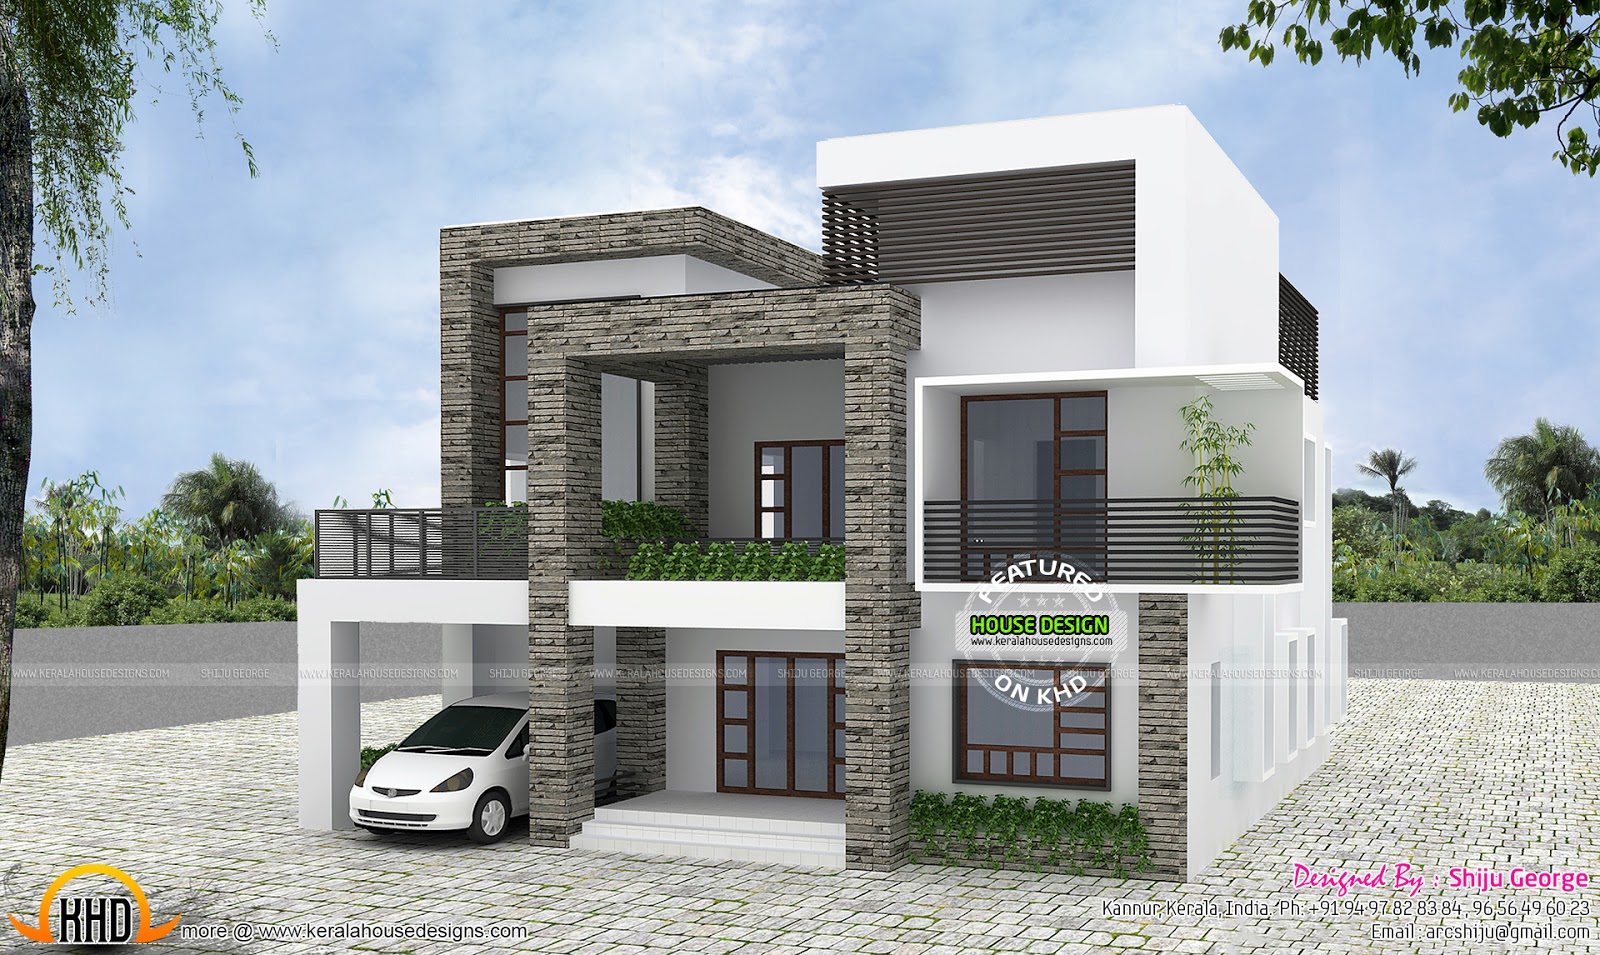 Contemporary house by shiju george home design simple for Different house design styles